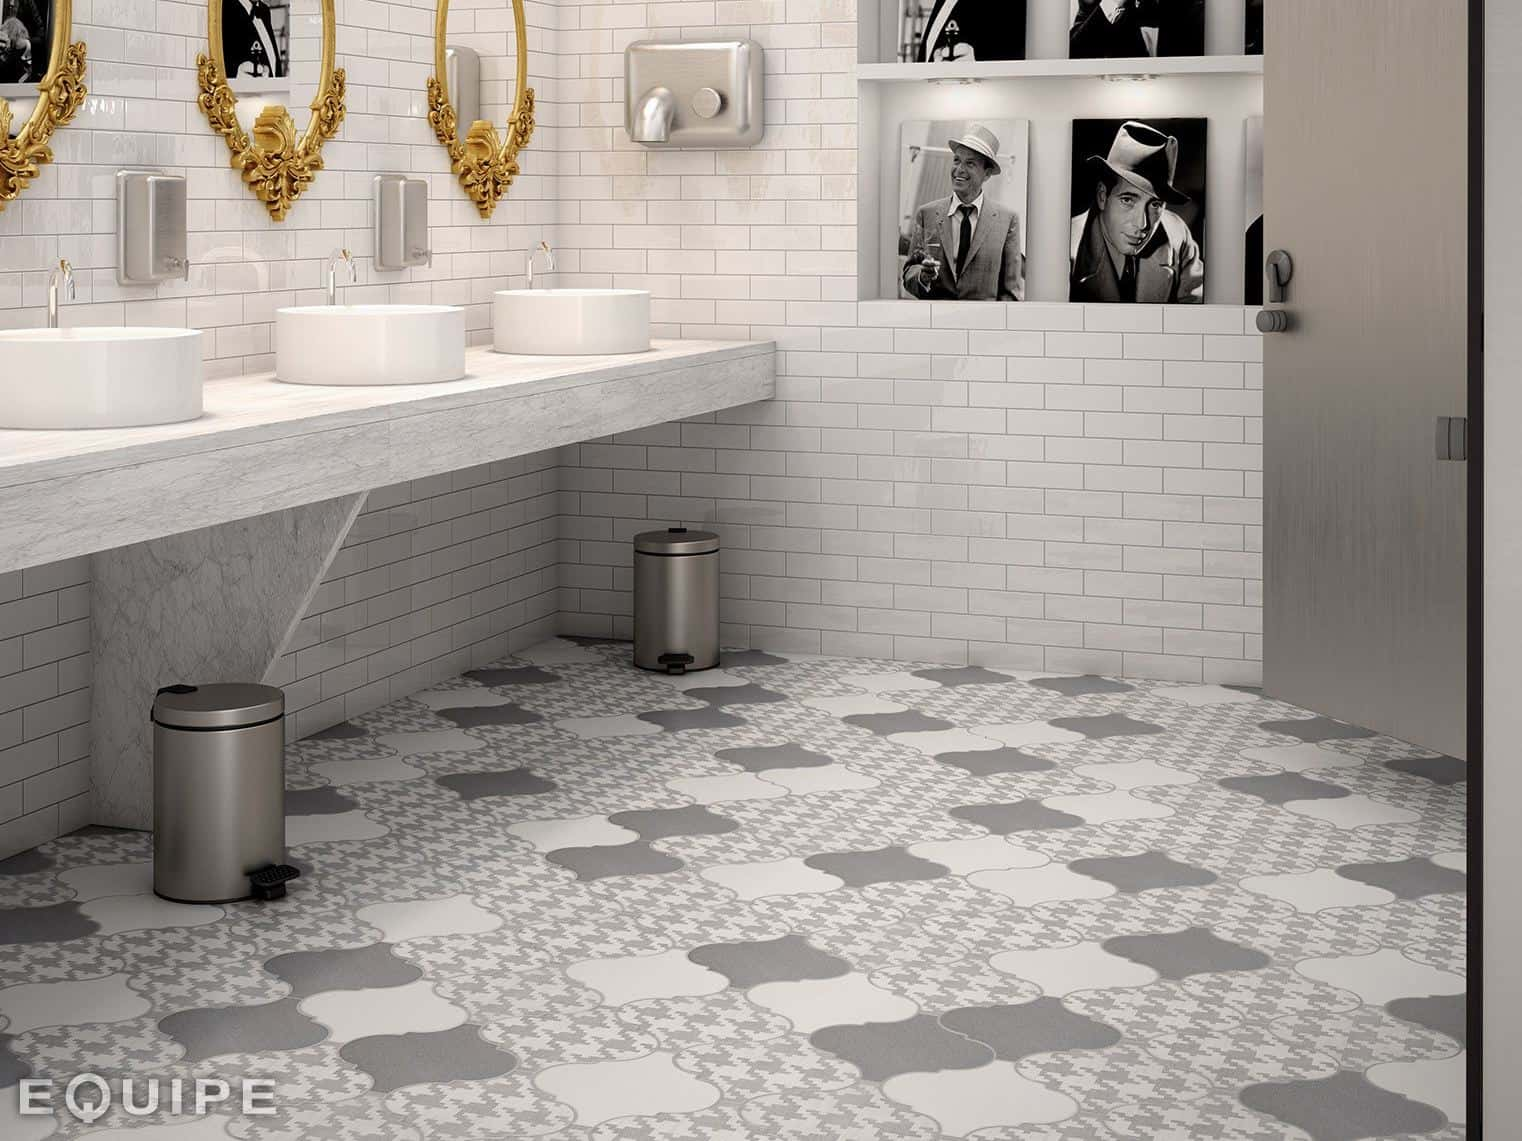 21 arabesque tile ideas for floor wall and backsplash Bathroom wall and floor tiles ideas